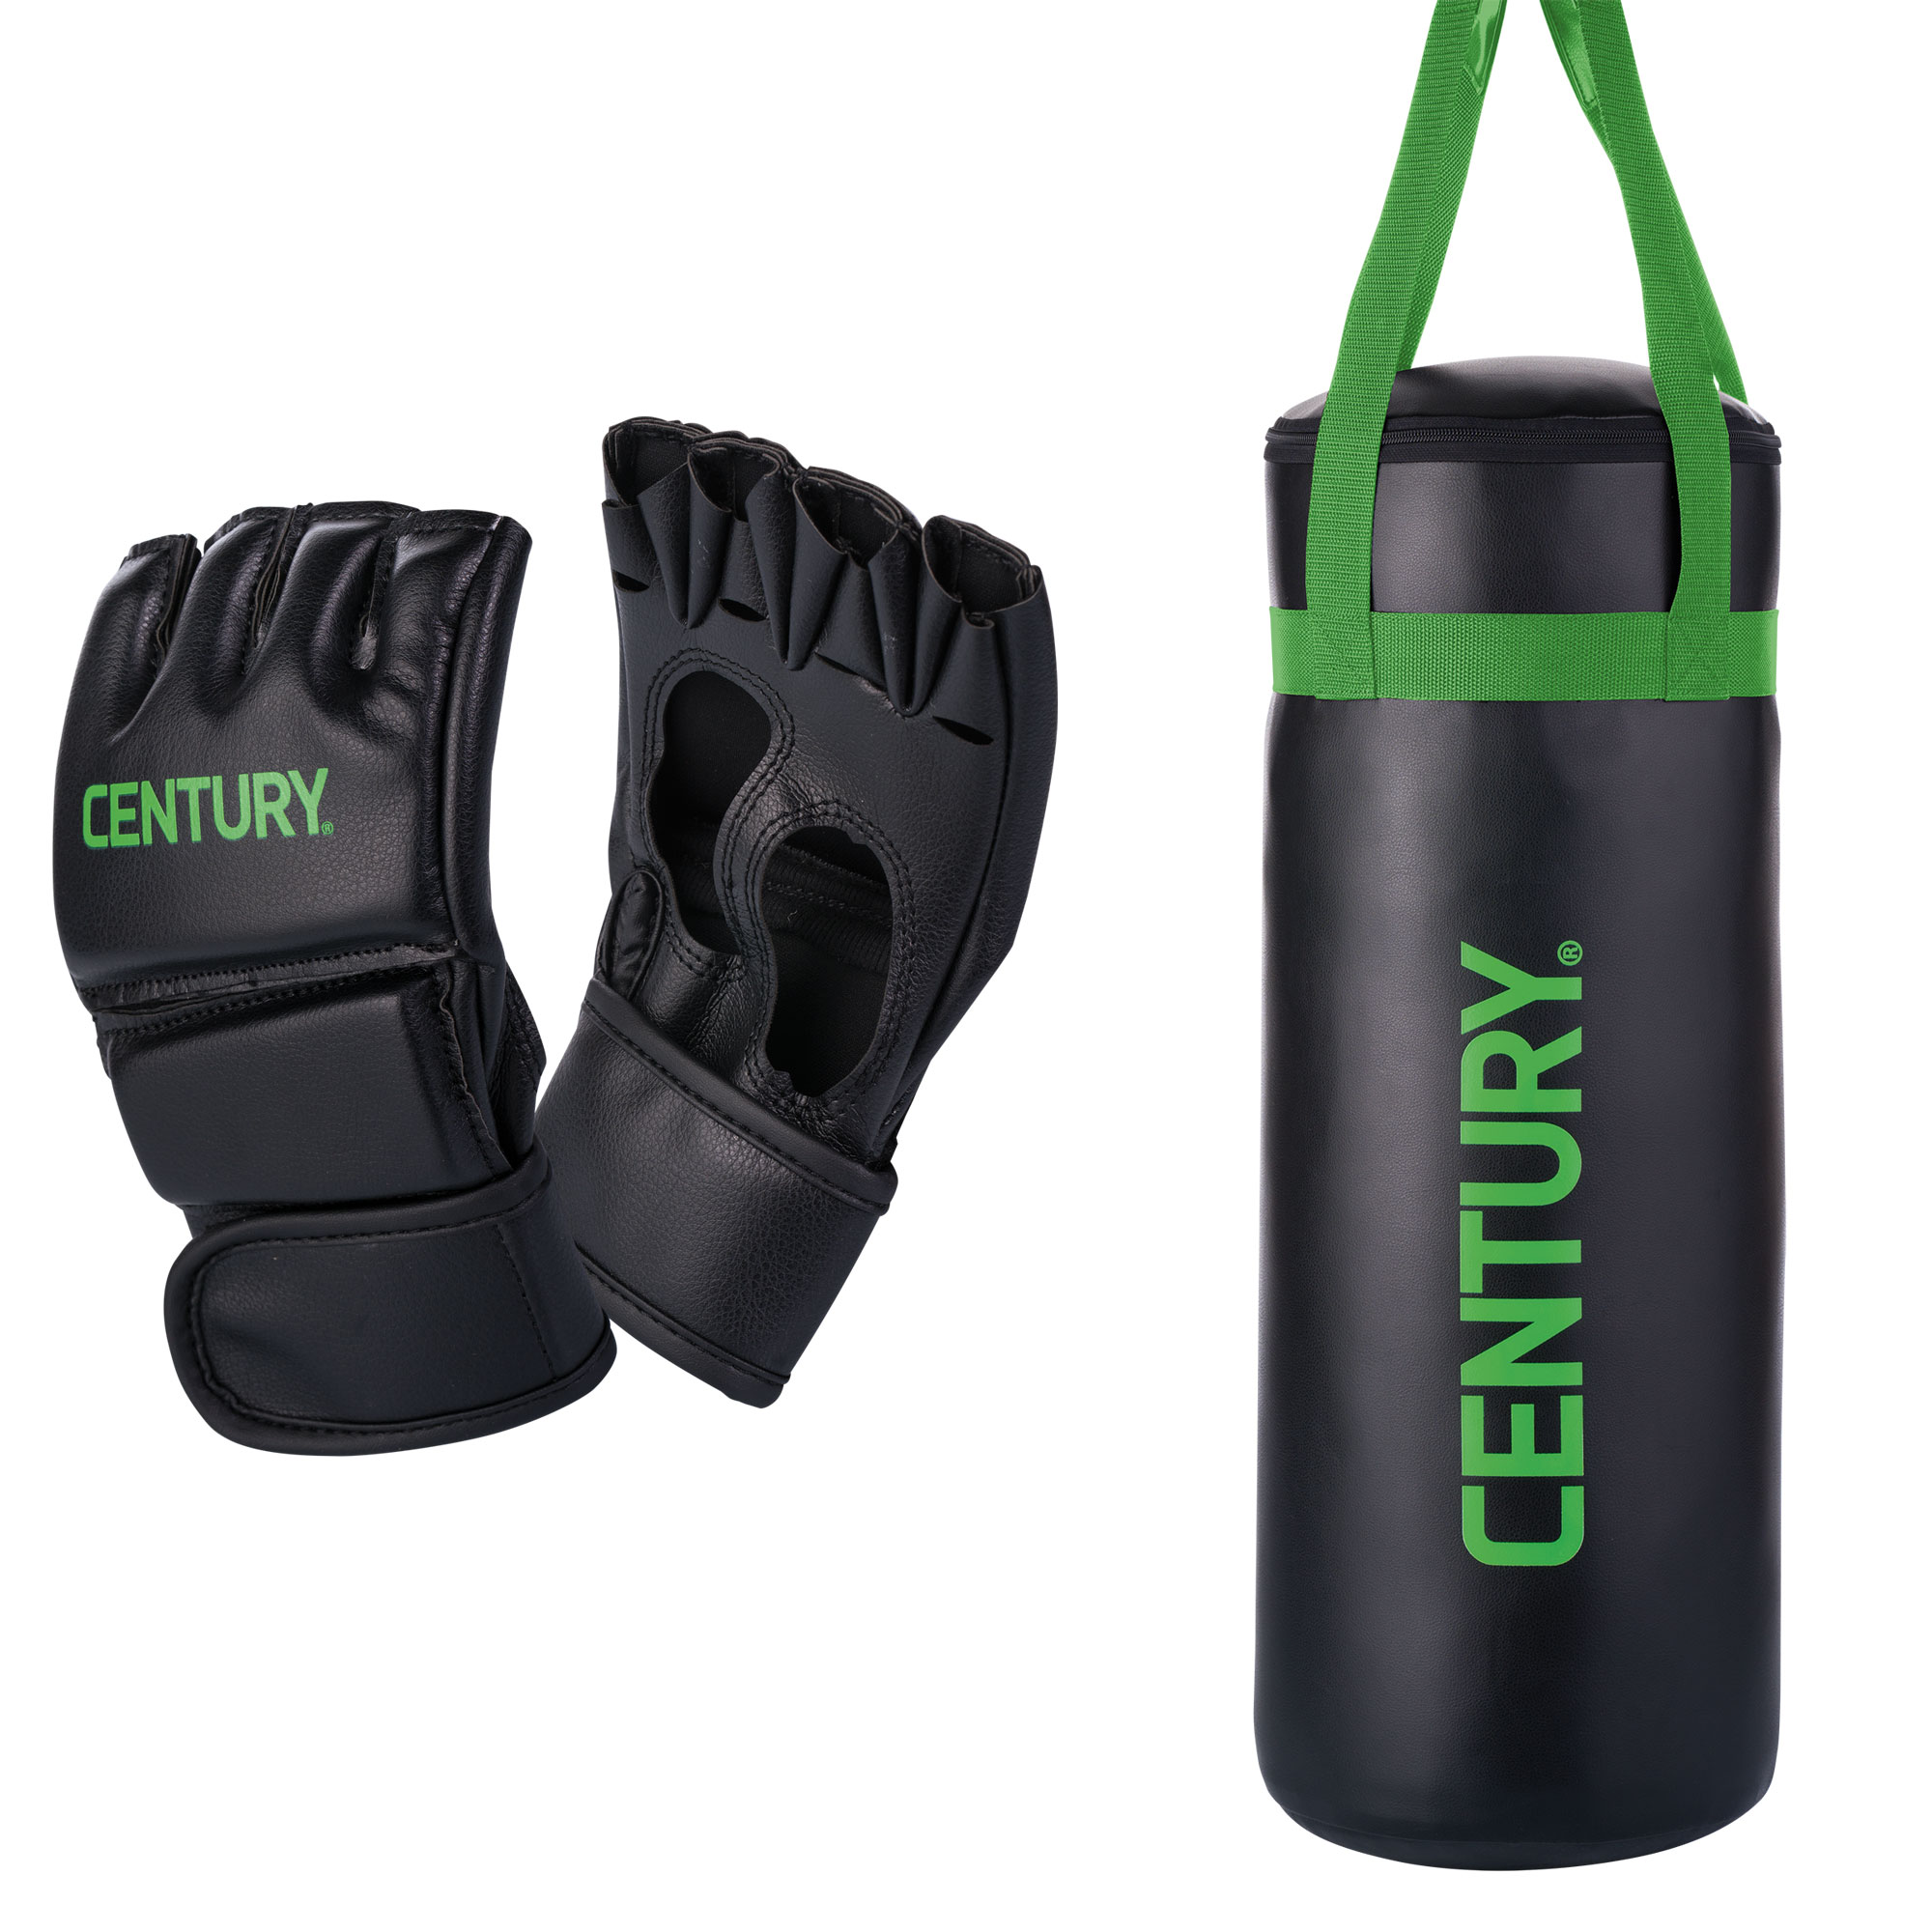 Century Martial Arts Youth Boxing MMA Training Bag and Kid Glove Combo Set ceffbf1a0d15a